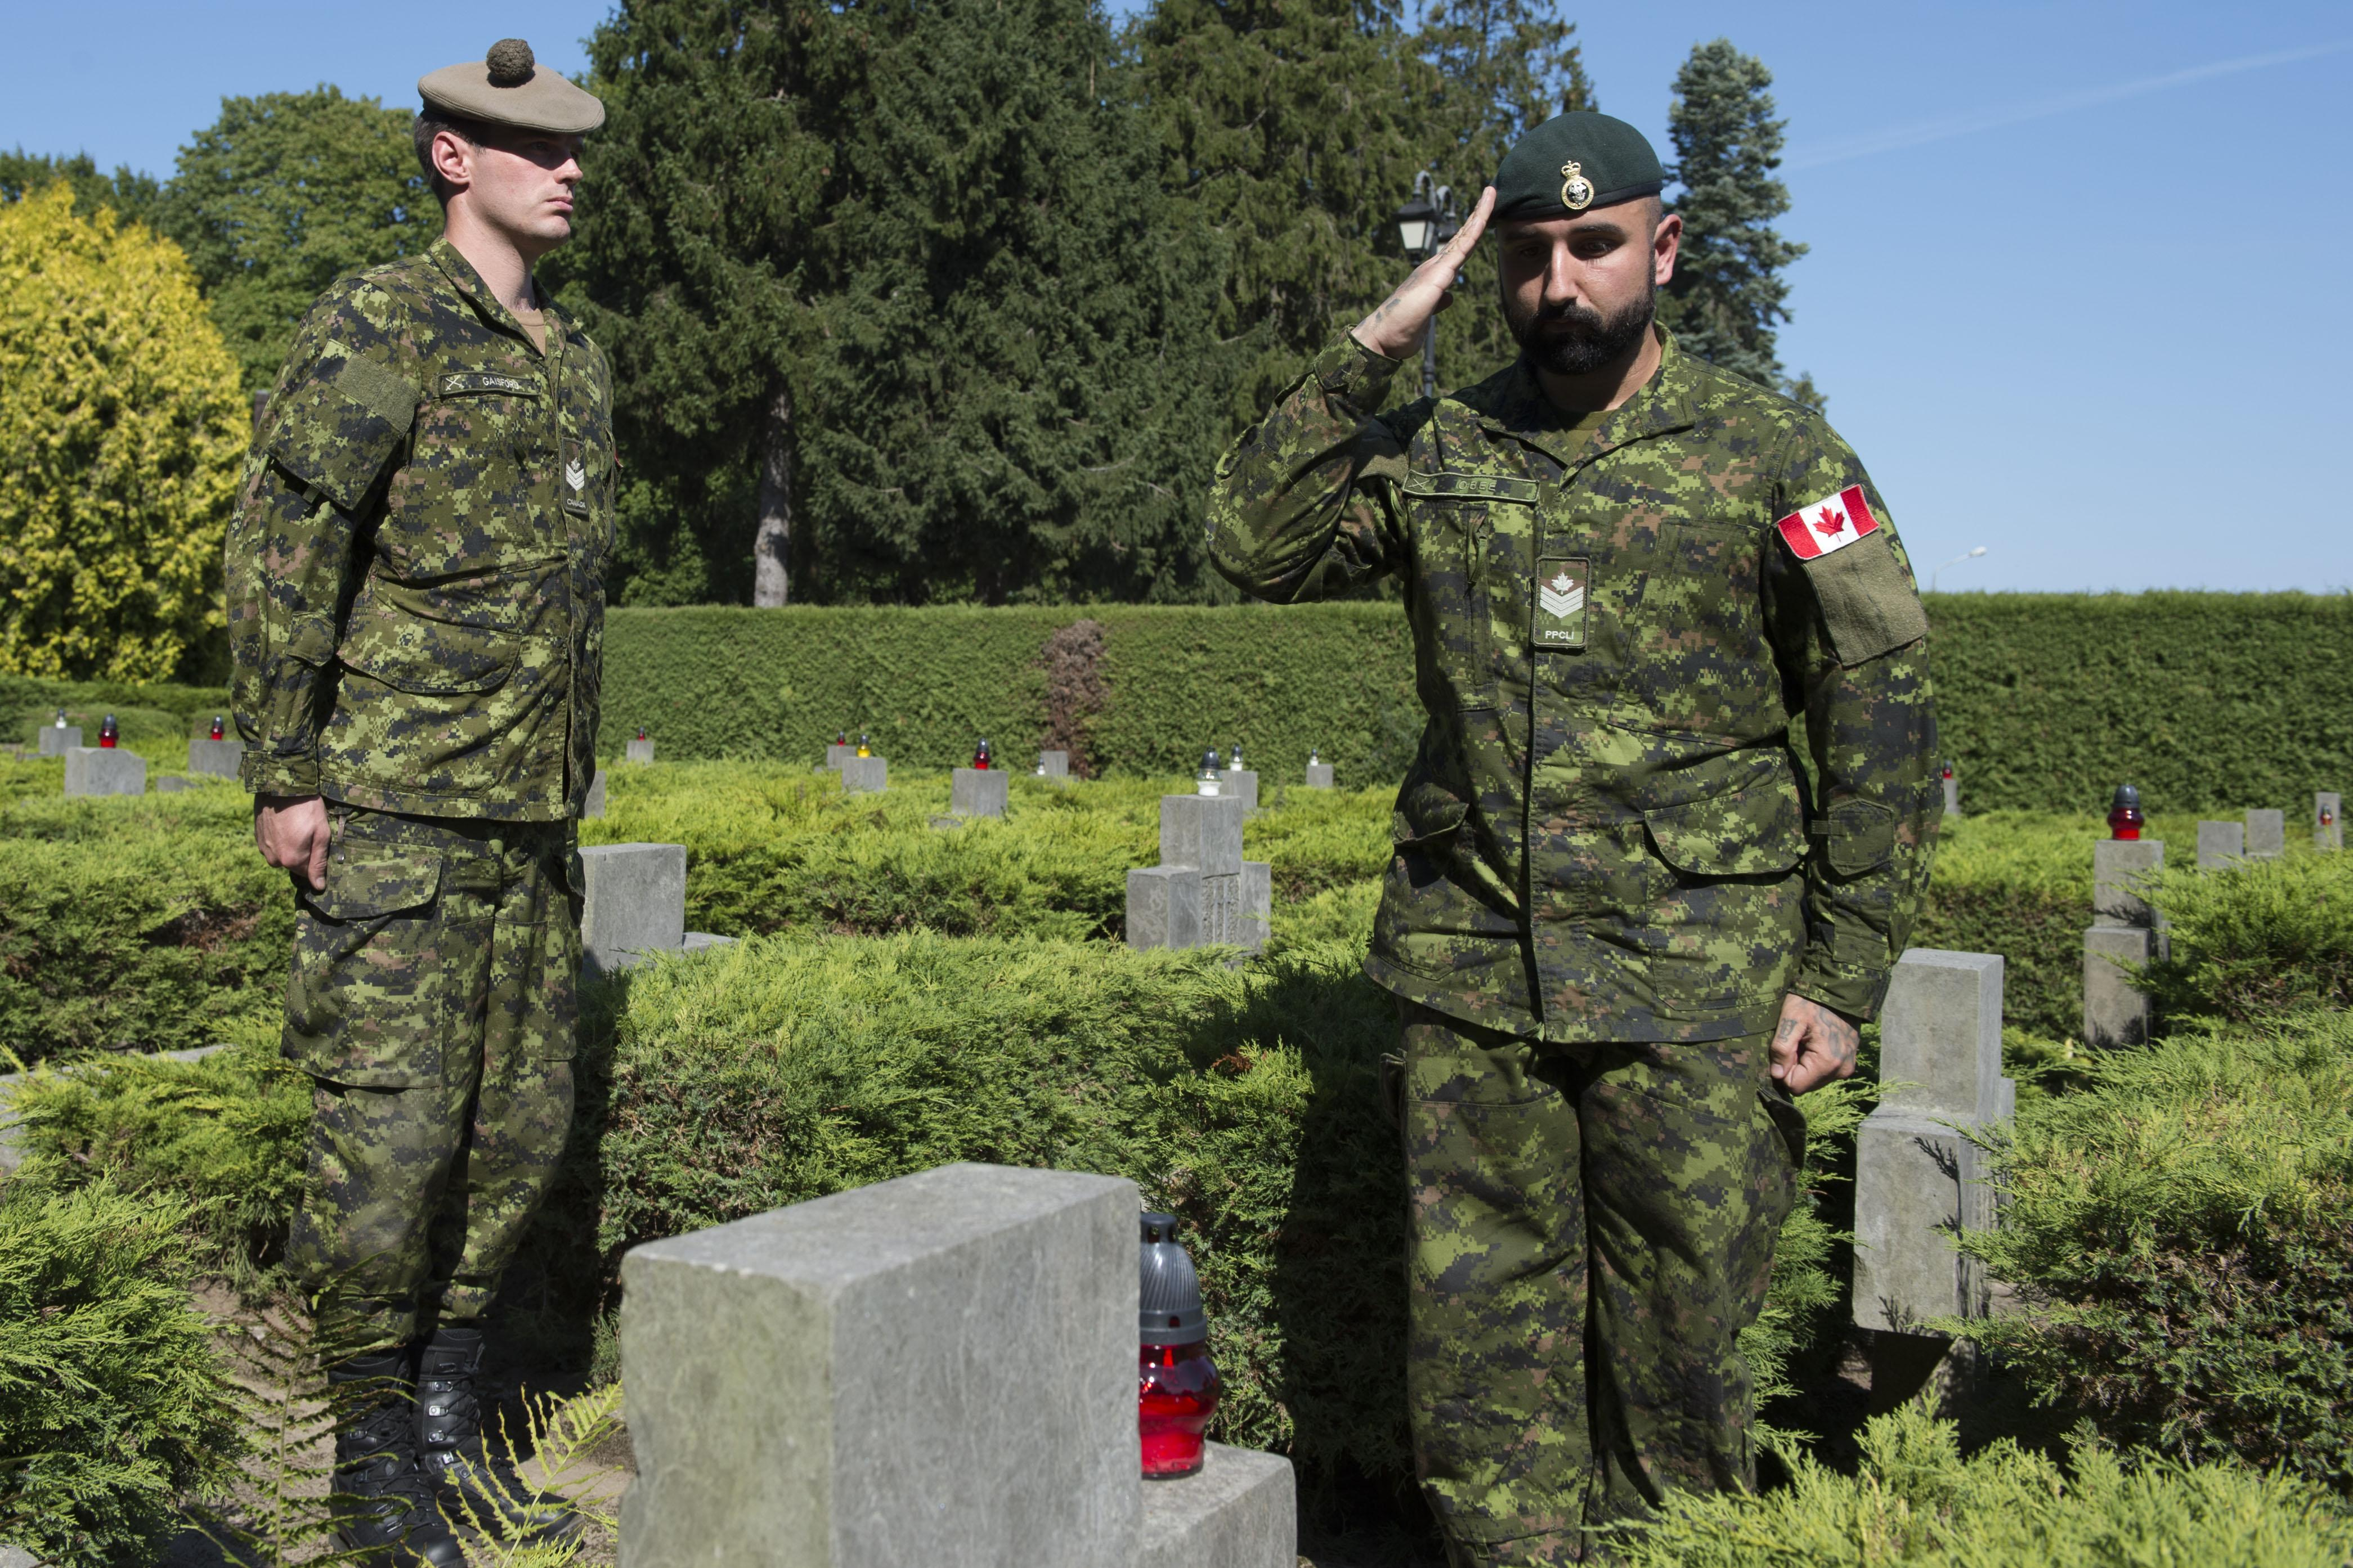 Sergeant (Sgt) Obee, from 1 Princess Patricia Canadian Light Infantry (1PPCLI), salutes the grave stone of a Polish soldier after the World War II Commemoration Ceremony at the war cemetery in Drawsko Pomorskie on September 1, 2016. (Photo: Cpl Jay Ekin, Operation REASSURANCE Land Task Force Imagery Technician)